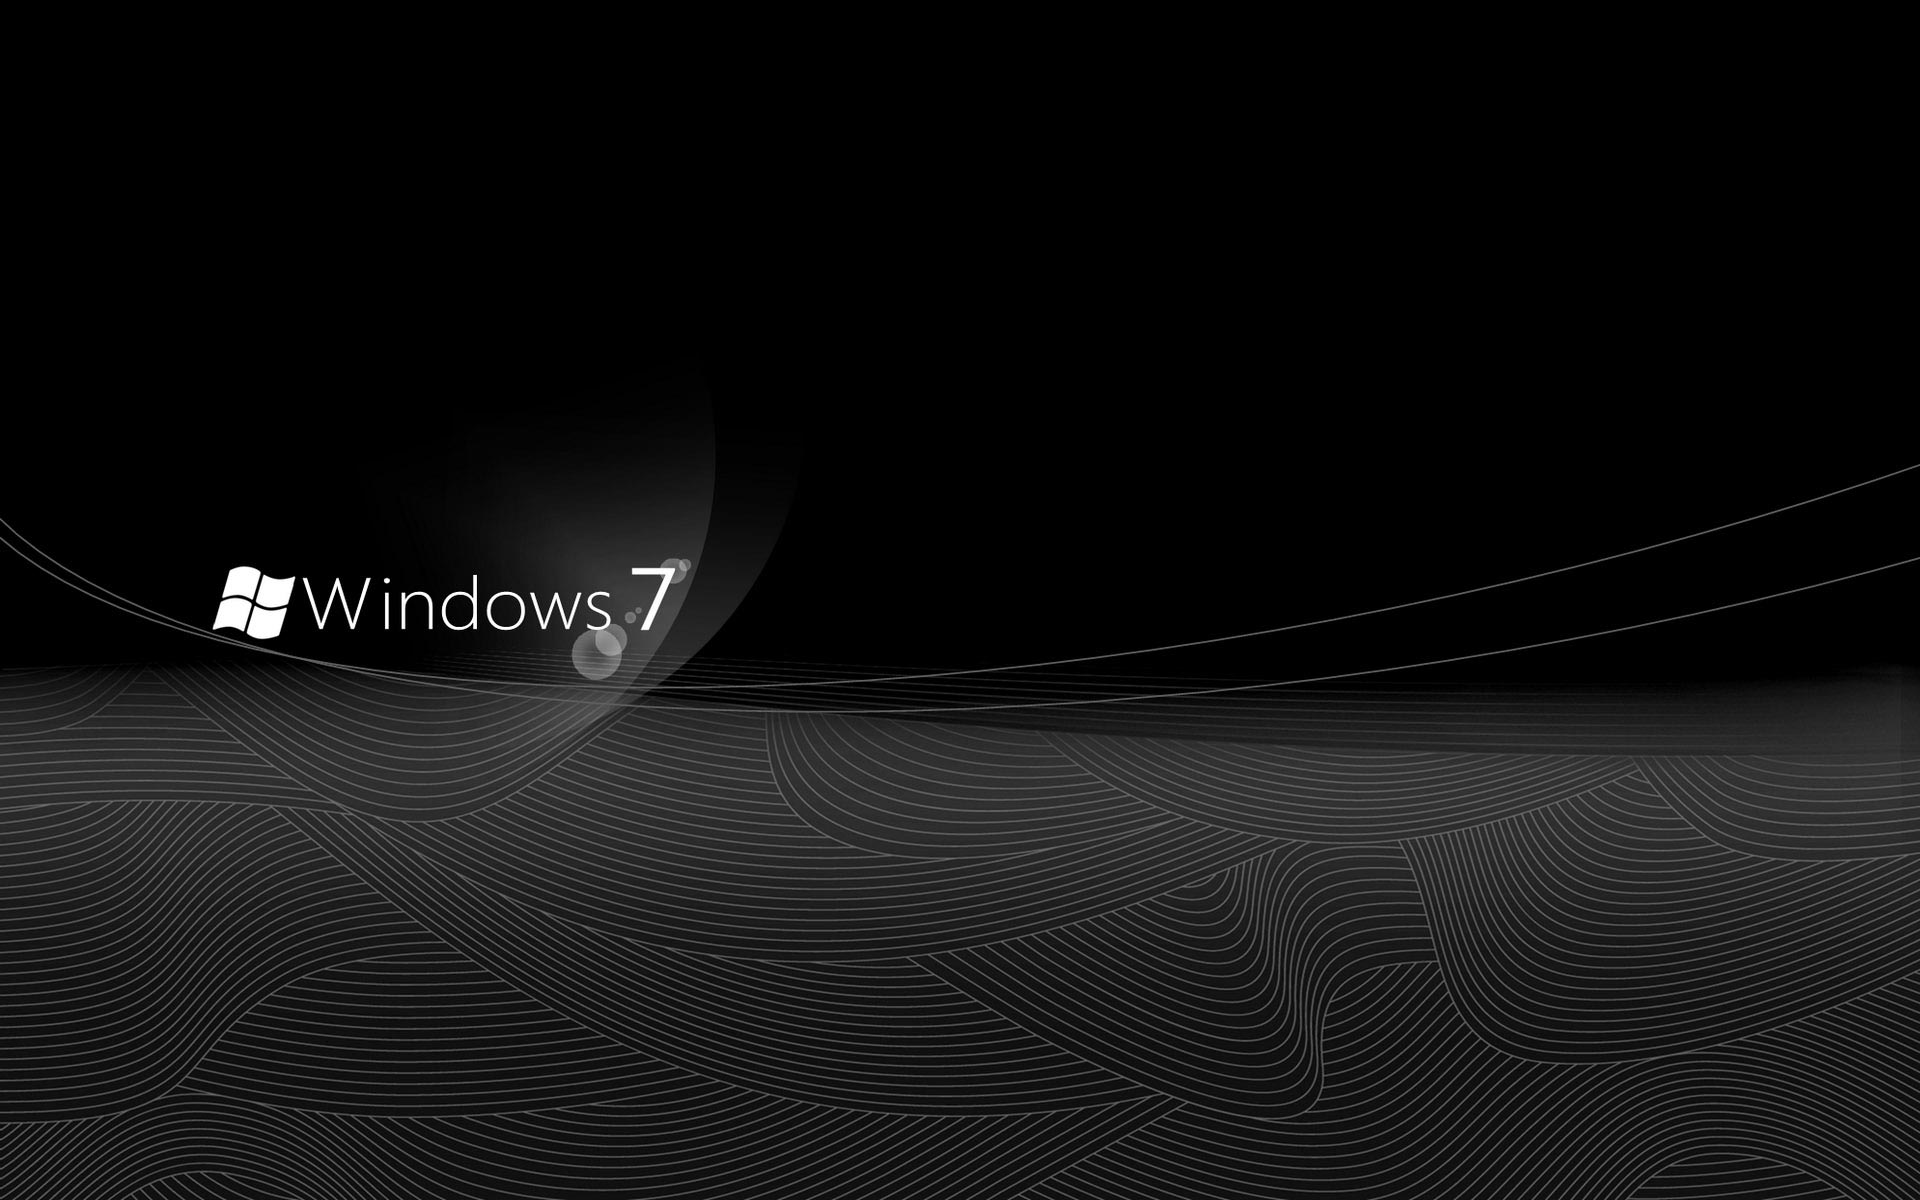 Windows 7 Elegant black Desktop Wallpaper High Quality Wallpapers 1920x1200